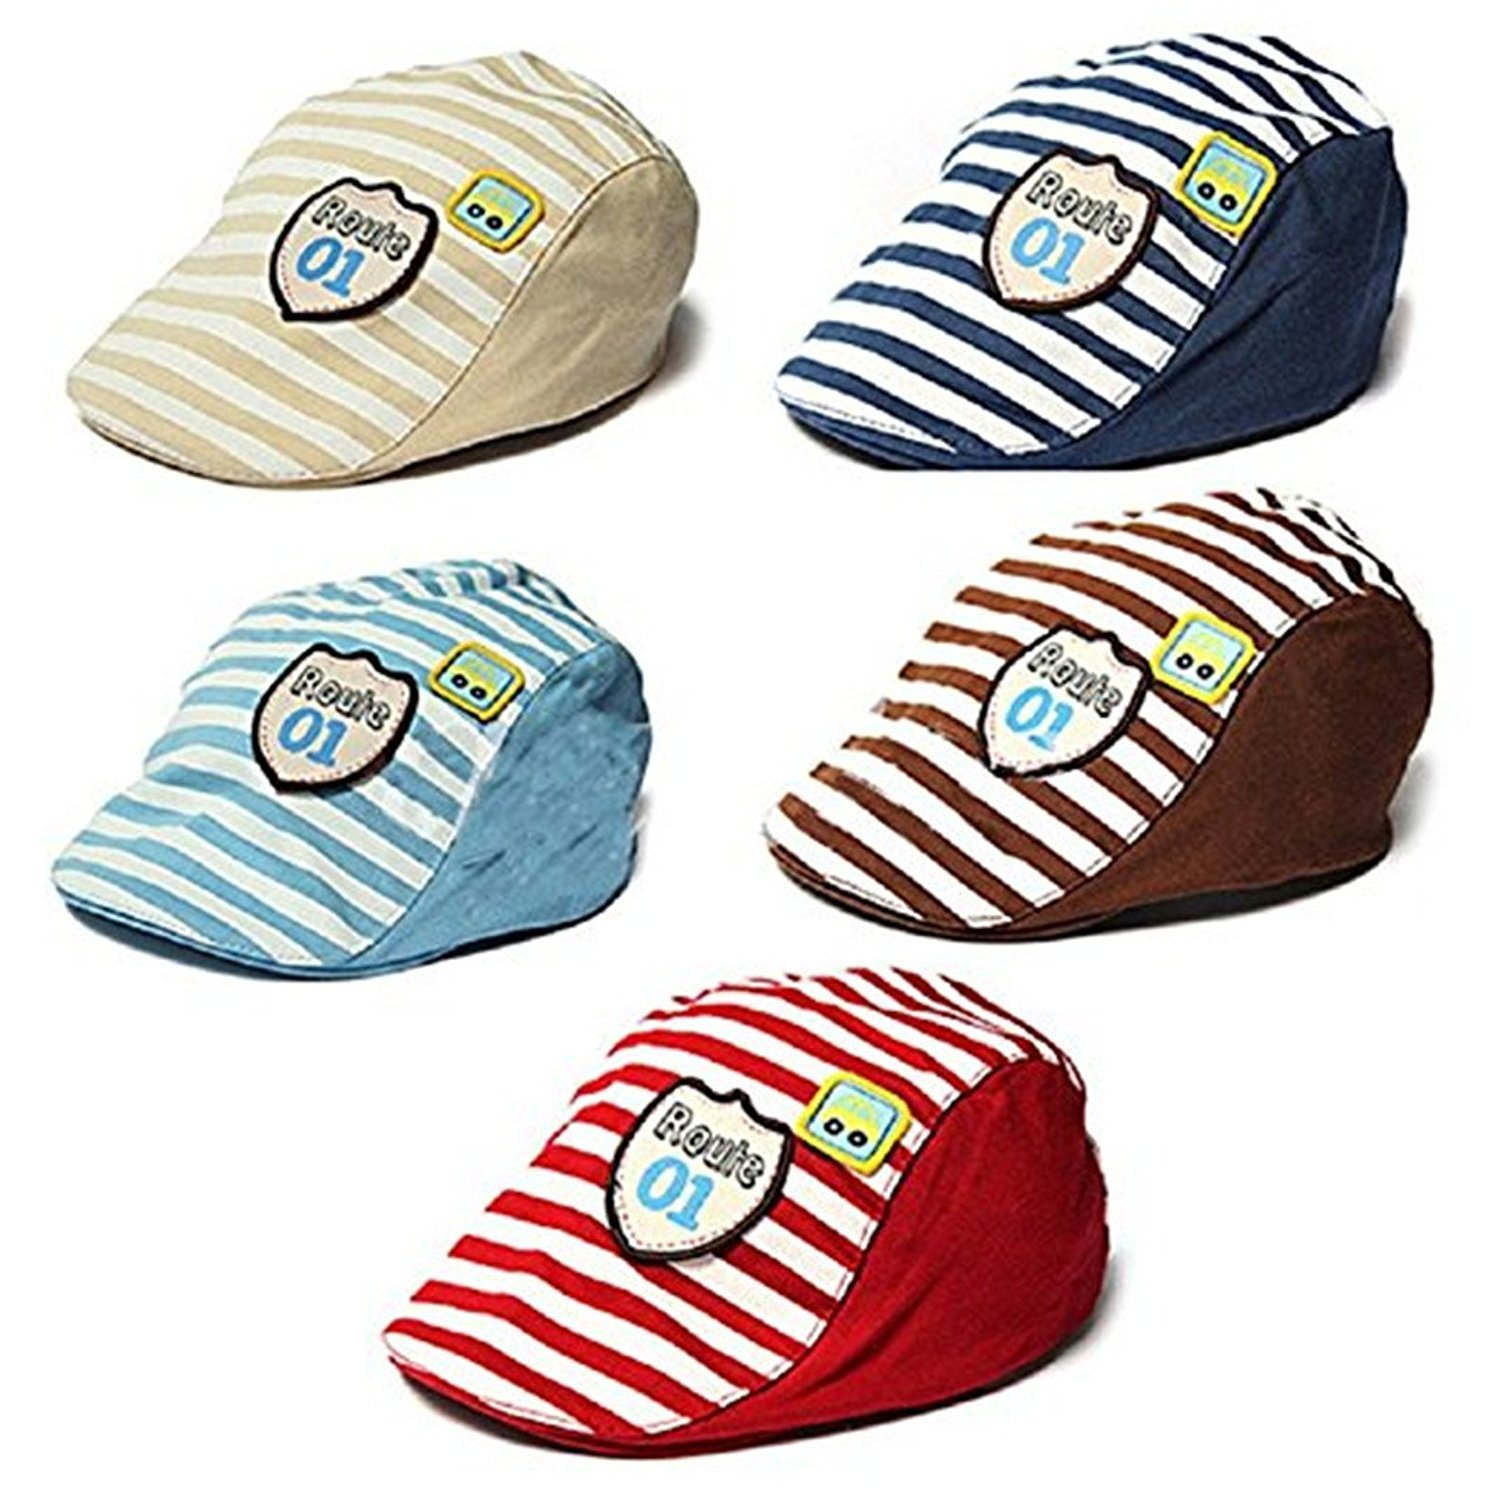 80dc9fce43d Gemini mall® Baby Kids Toddler Stripe Beret Hat Flat Cap Baseball Cap  Brown  Amazon.co.uk  Clothing